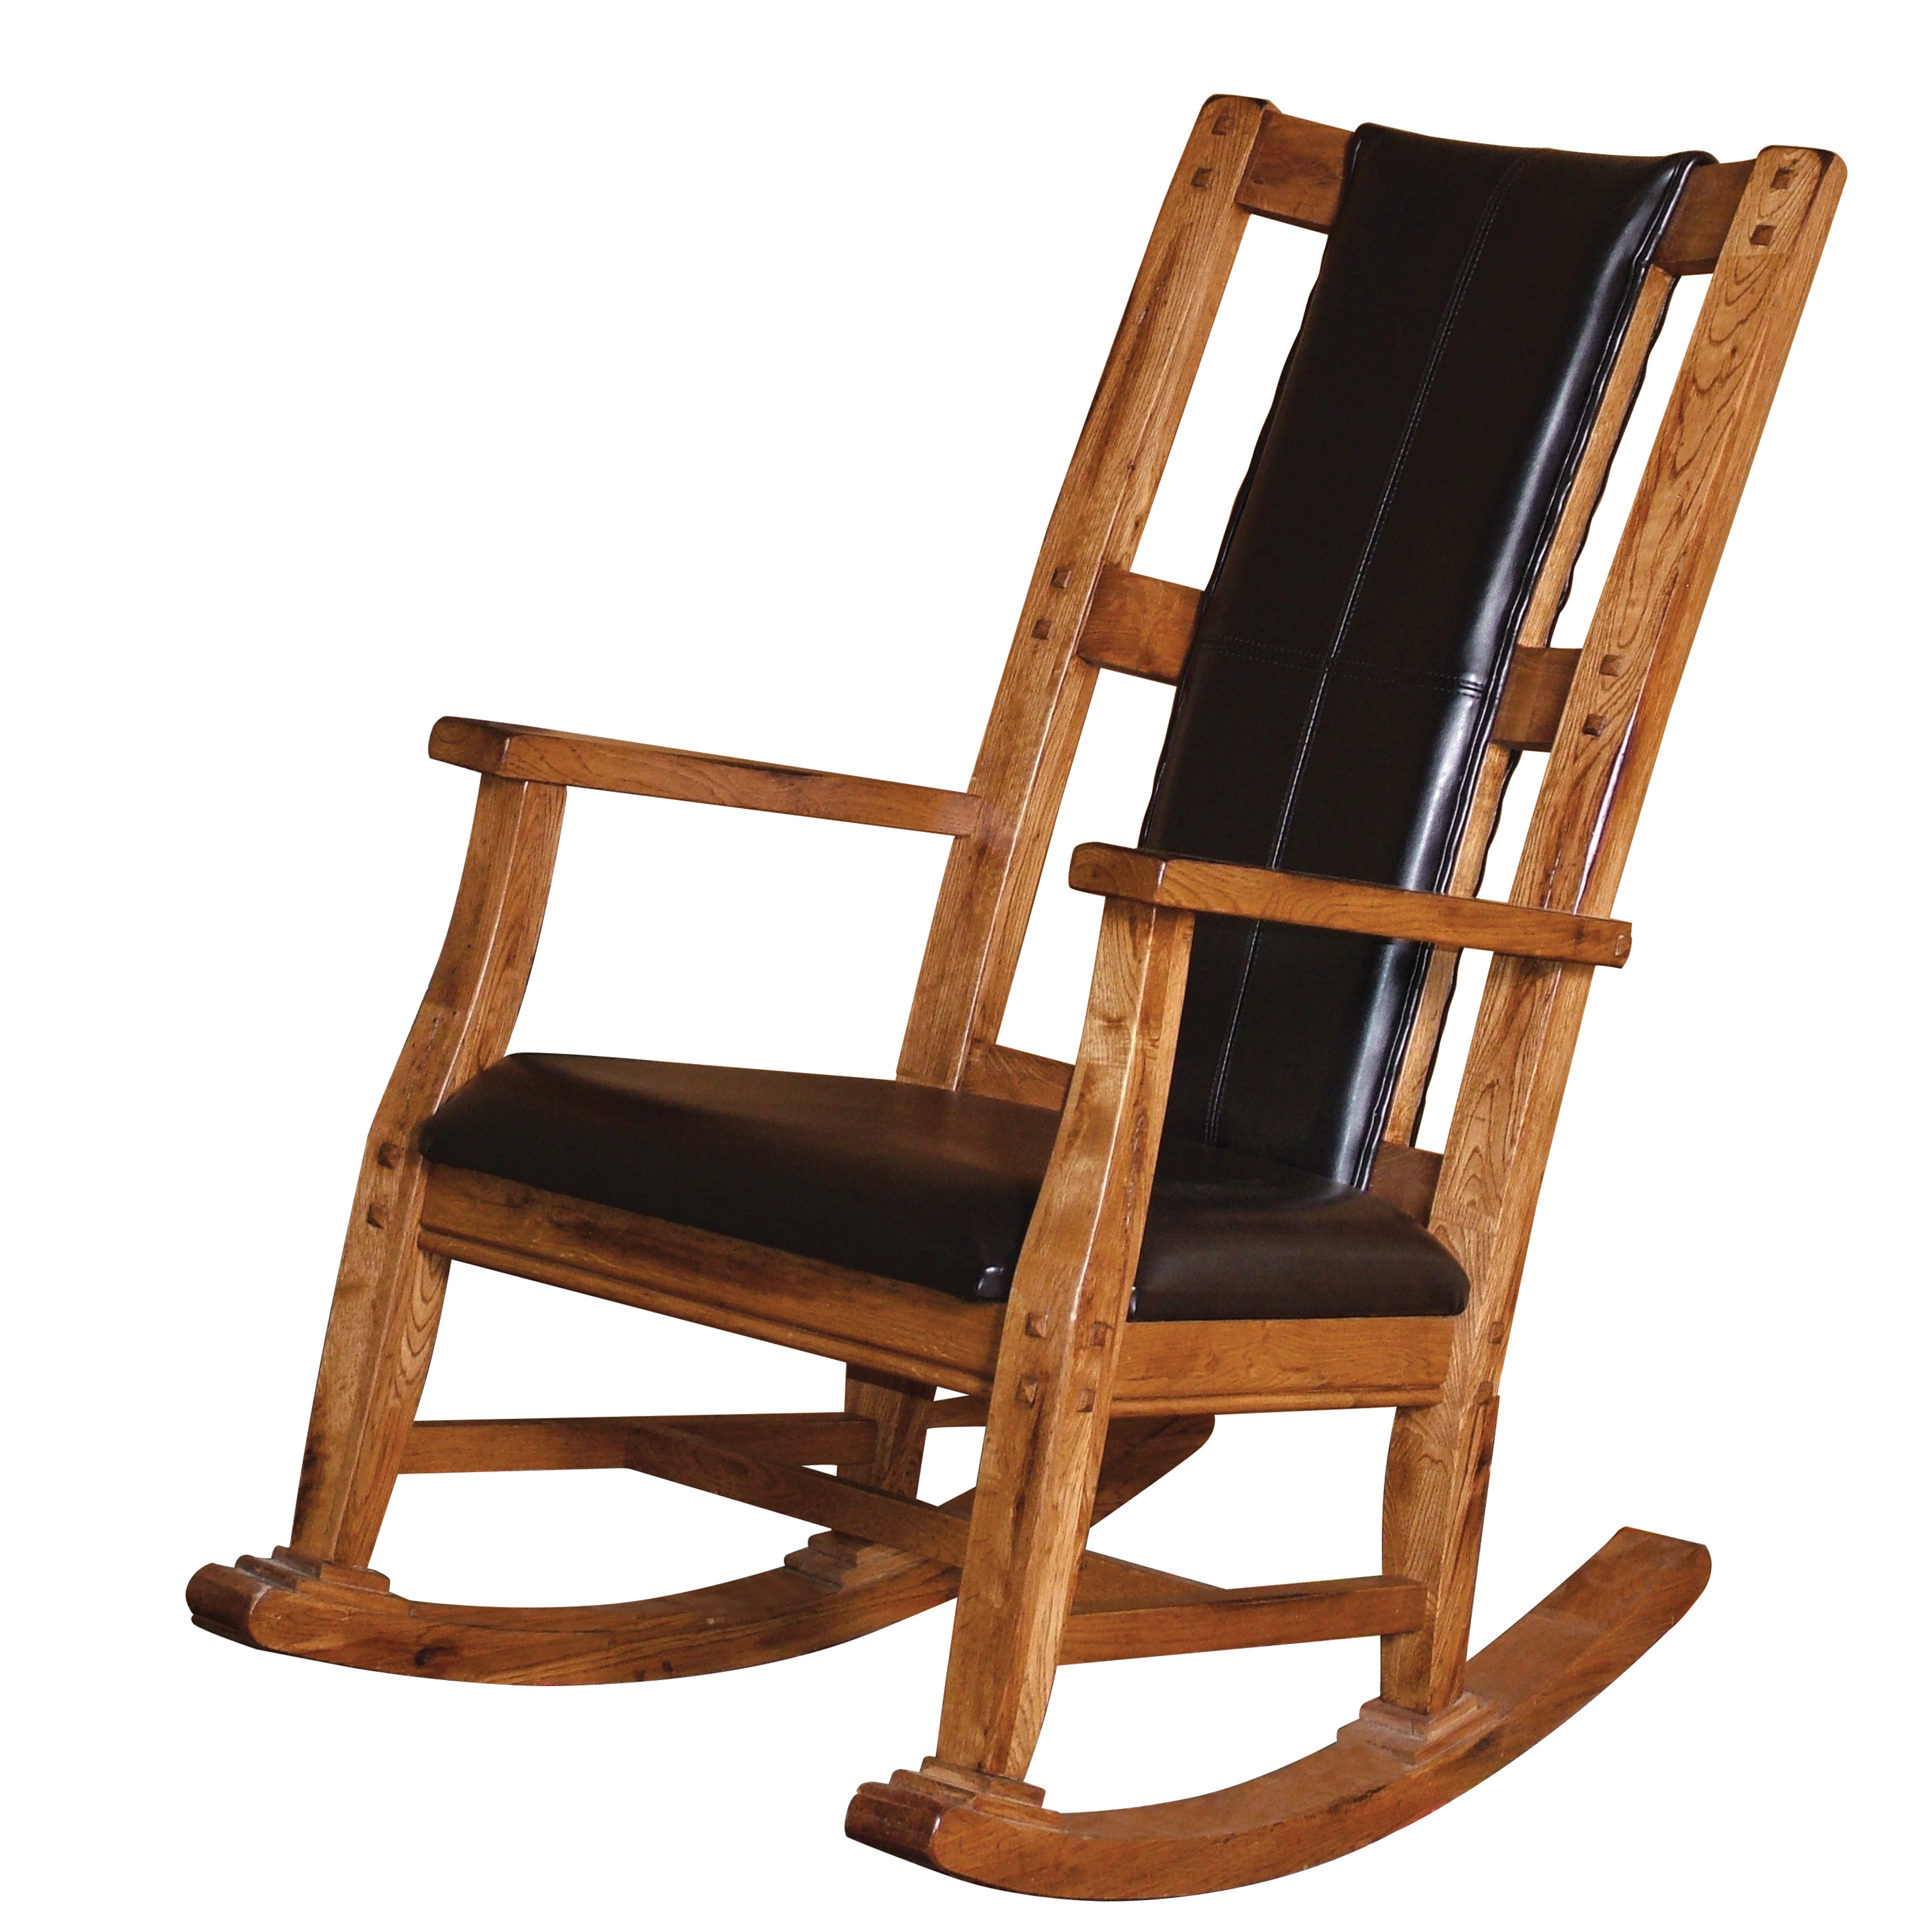 Gift Mark Mission Style Wooden Rocking Chair with Upholstered Seat